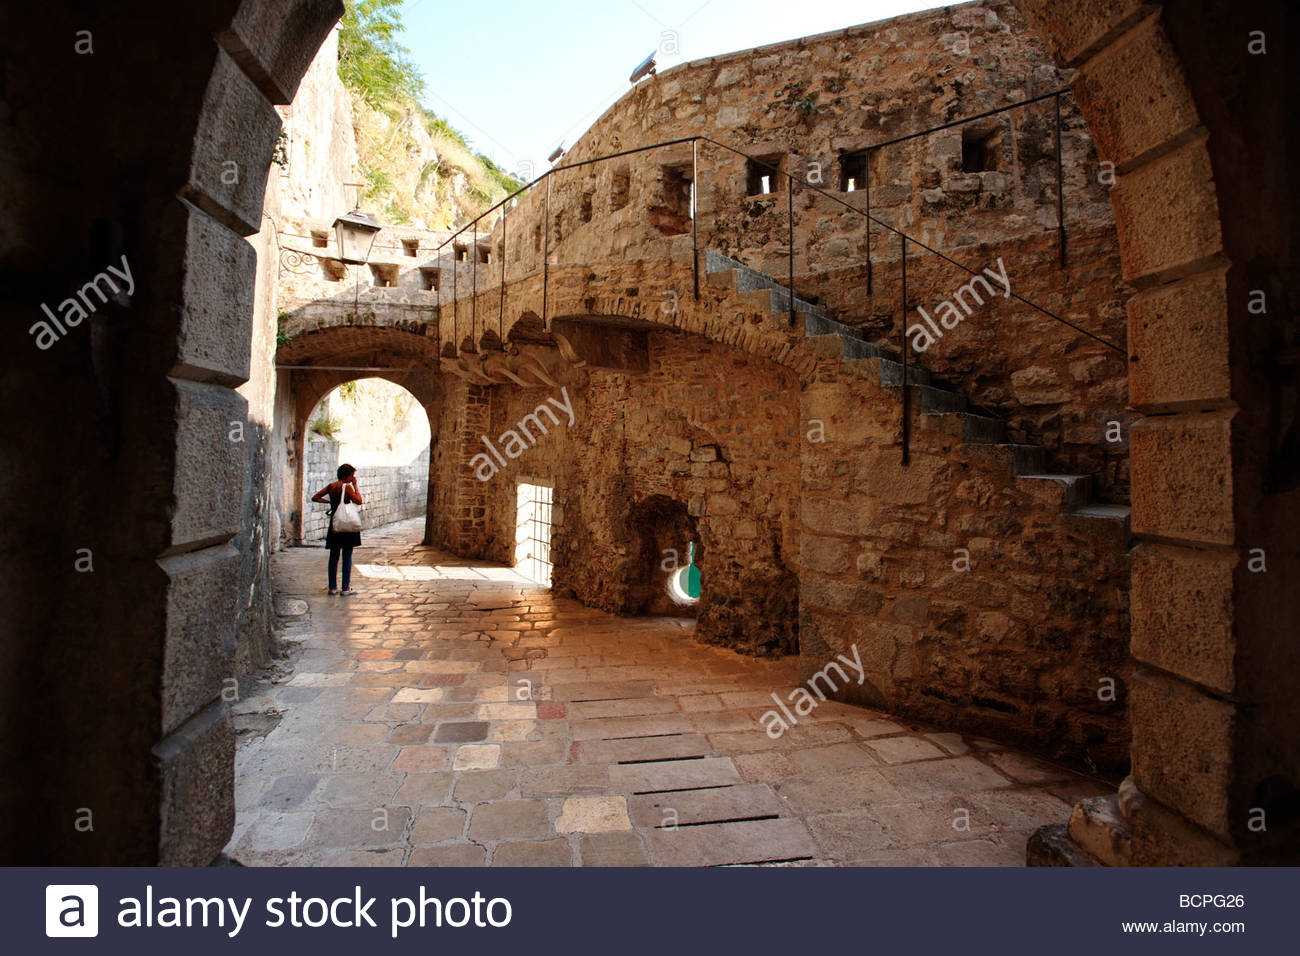 Old medieval town walls and gate Kotor Montenegro - Stock Image